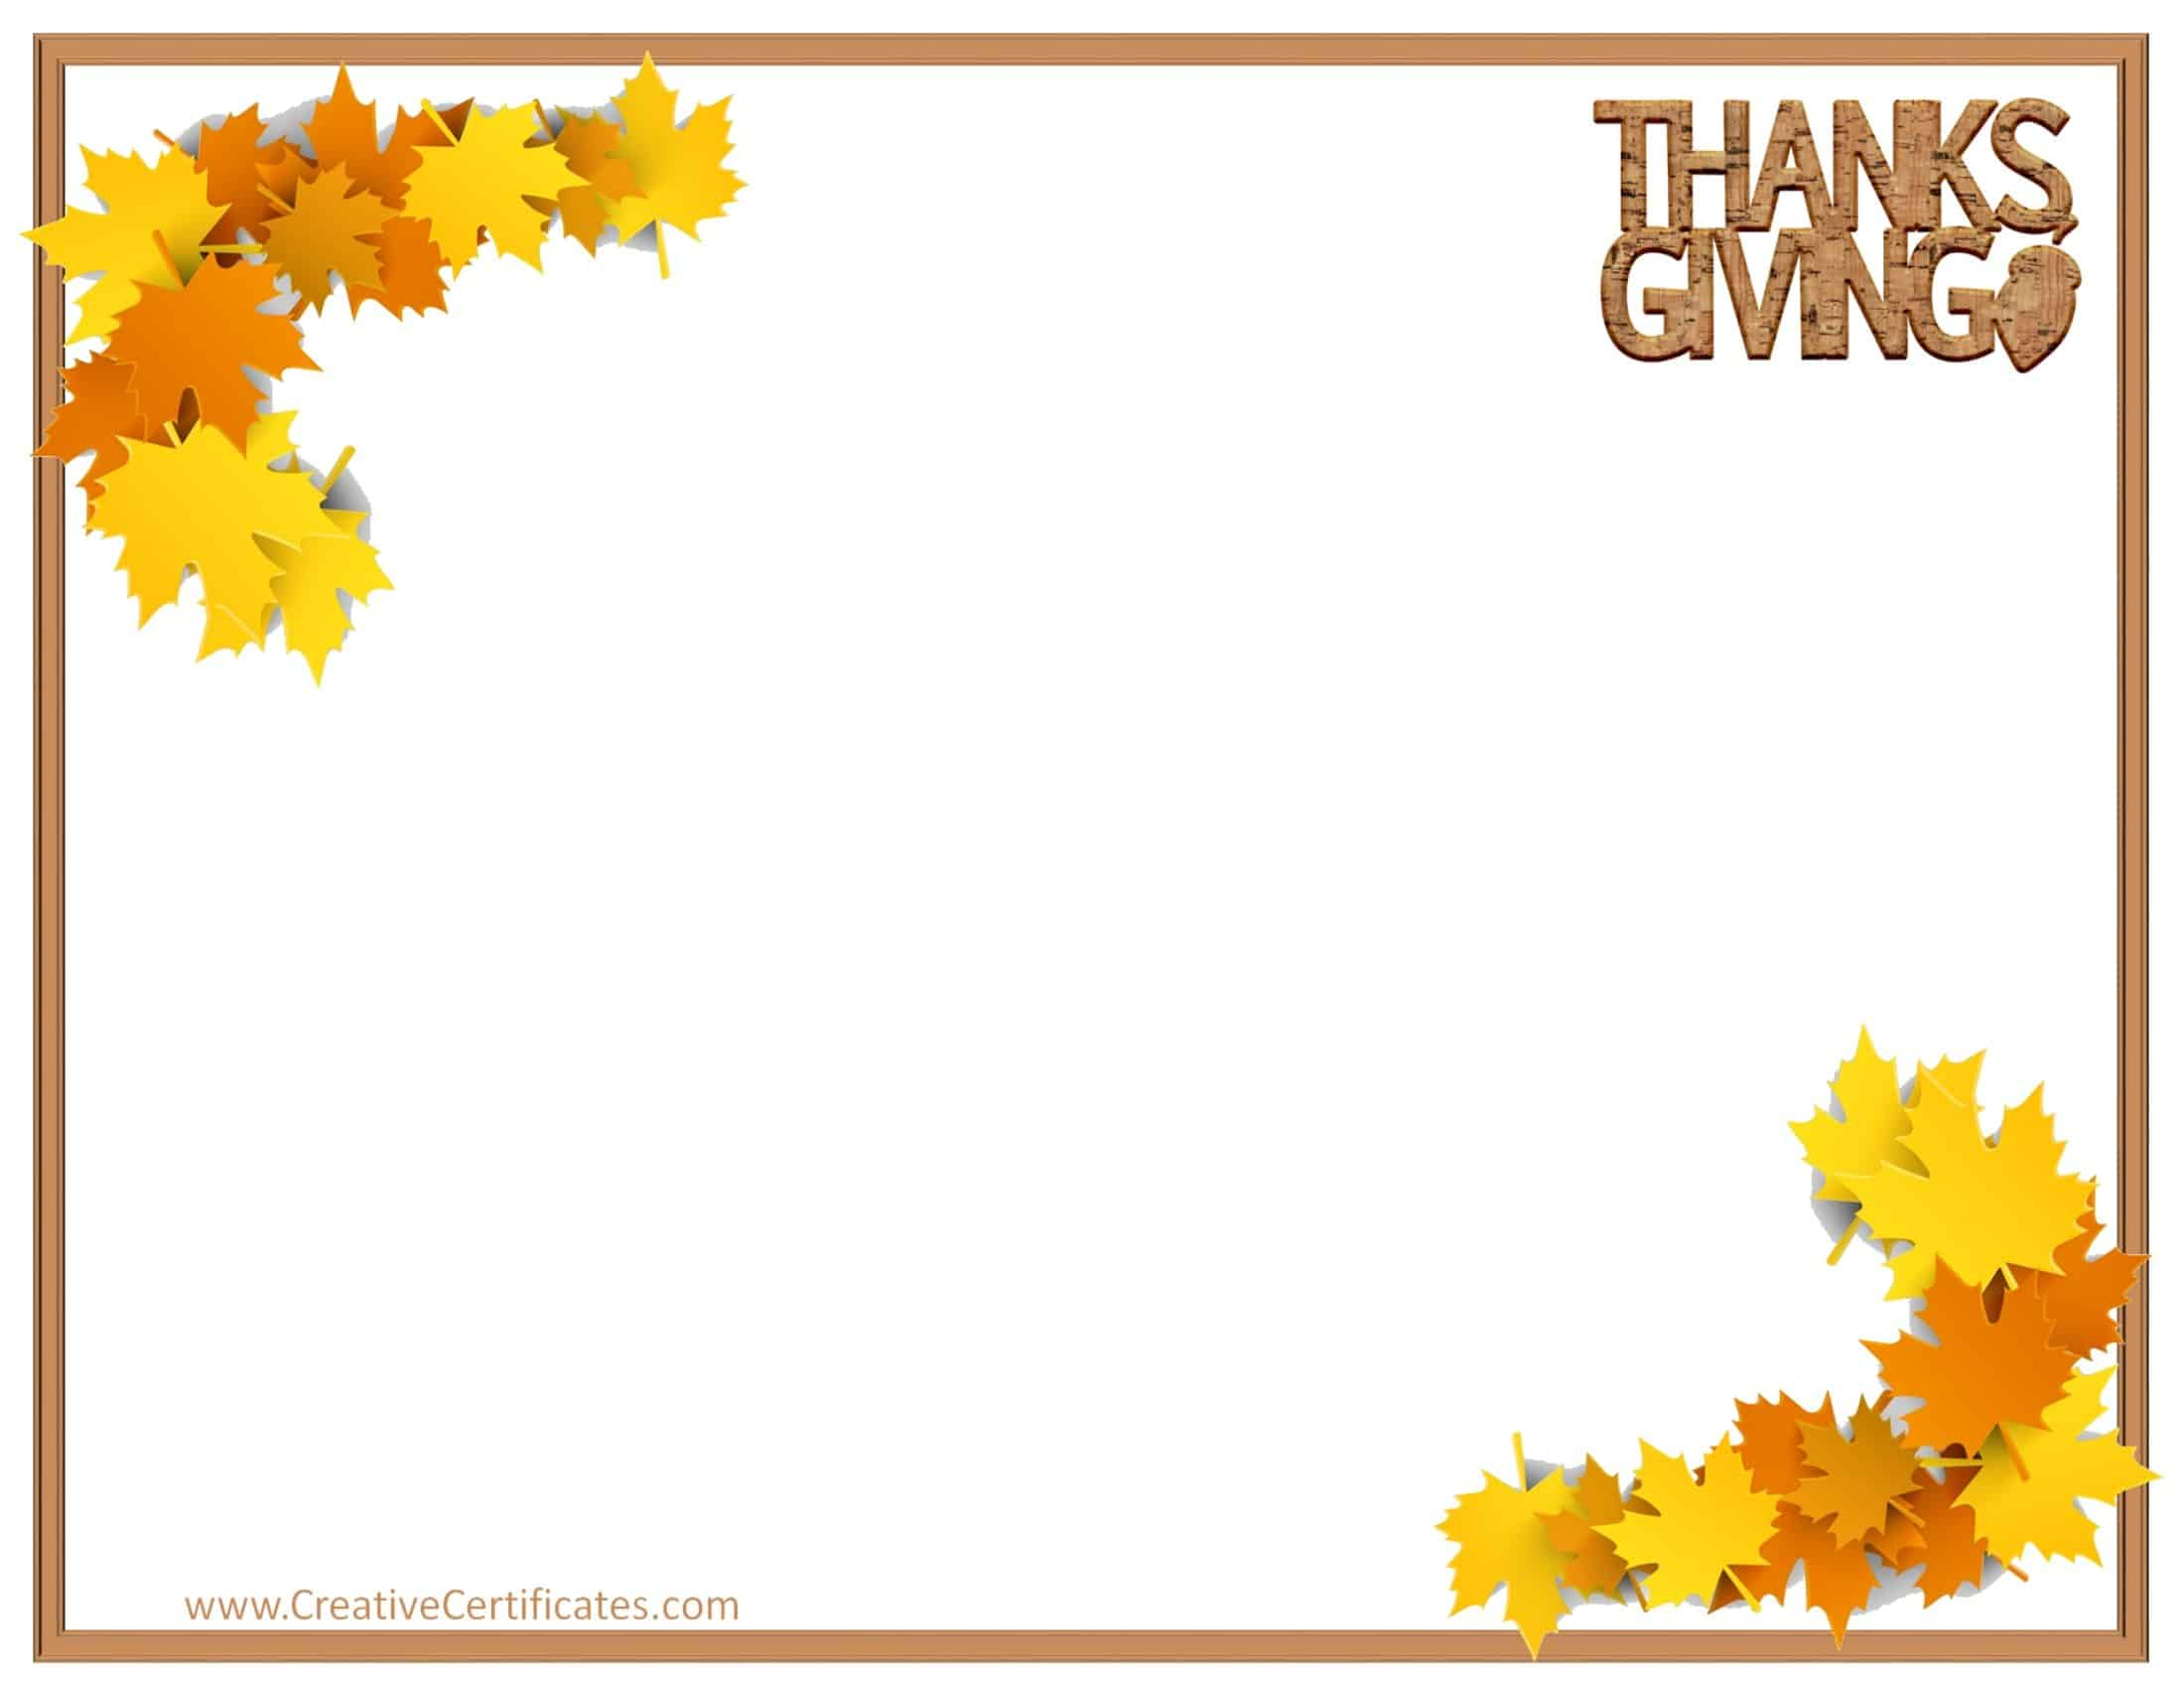 163 best Thanksgiving images on Pinterest | Stationery ...